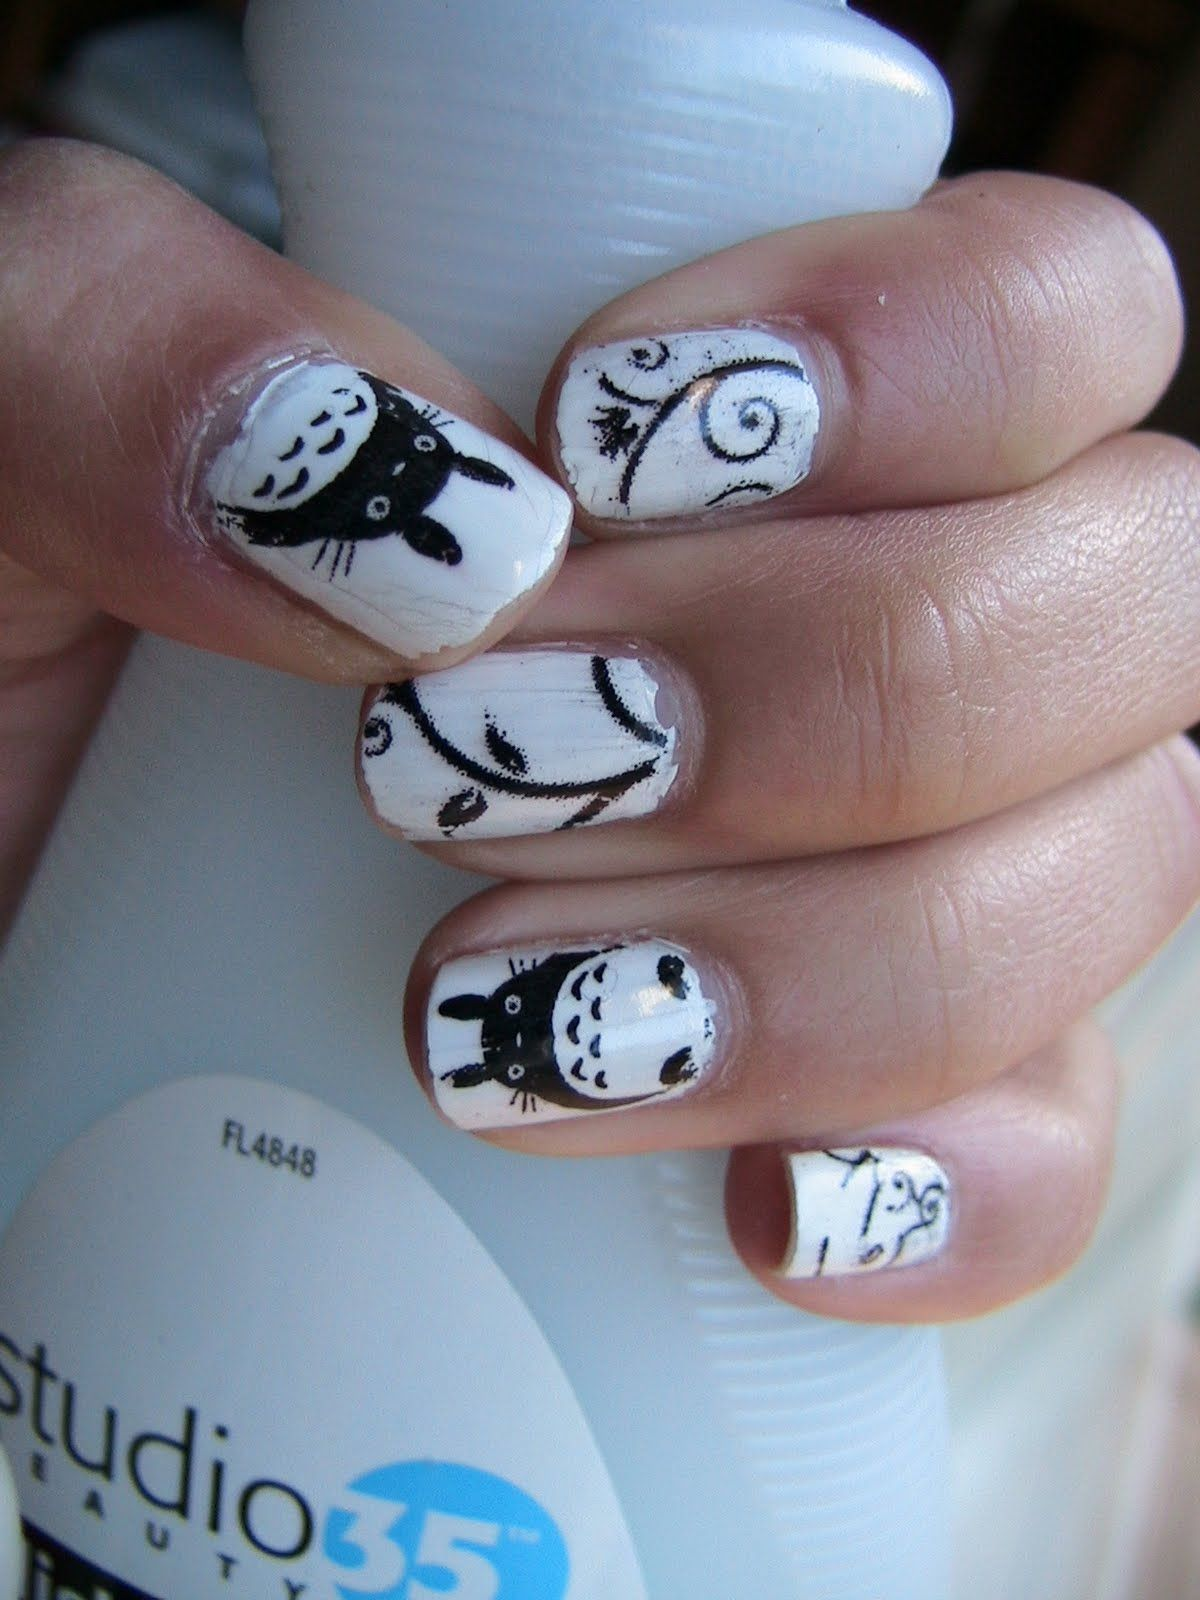 totoro nails Naomi Francois Galito Geekery and My Favorite Things